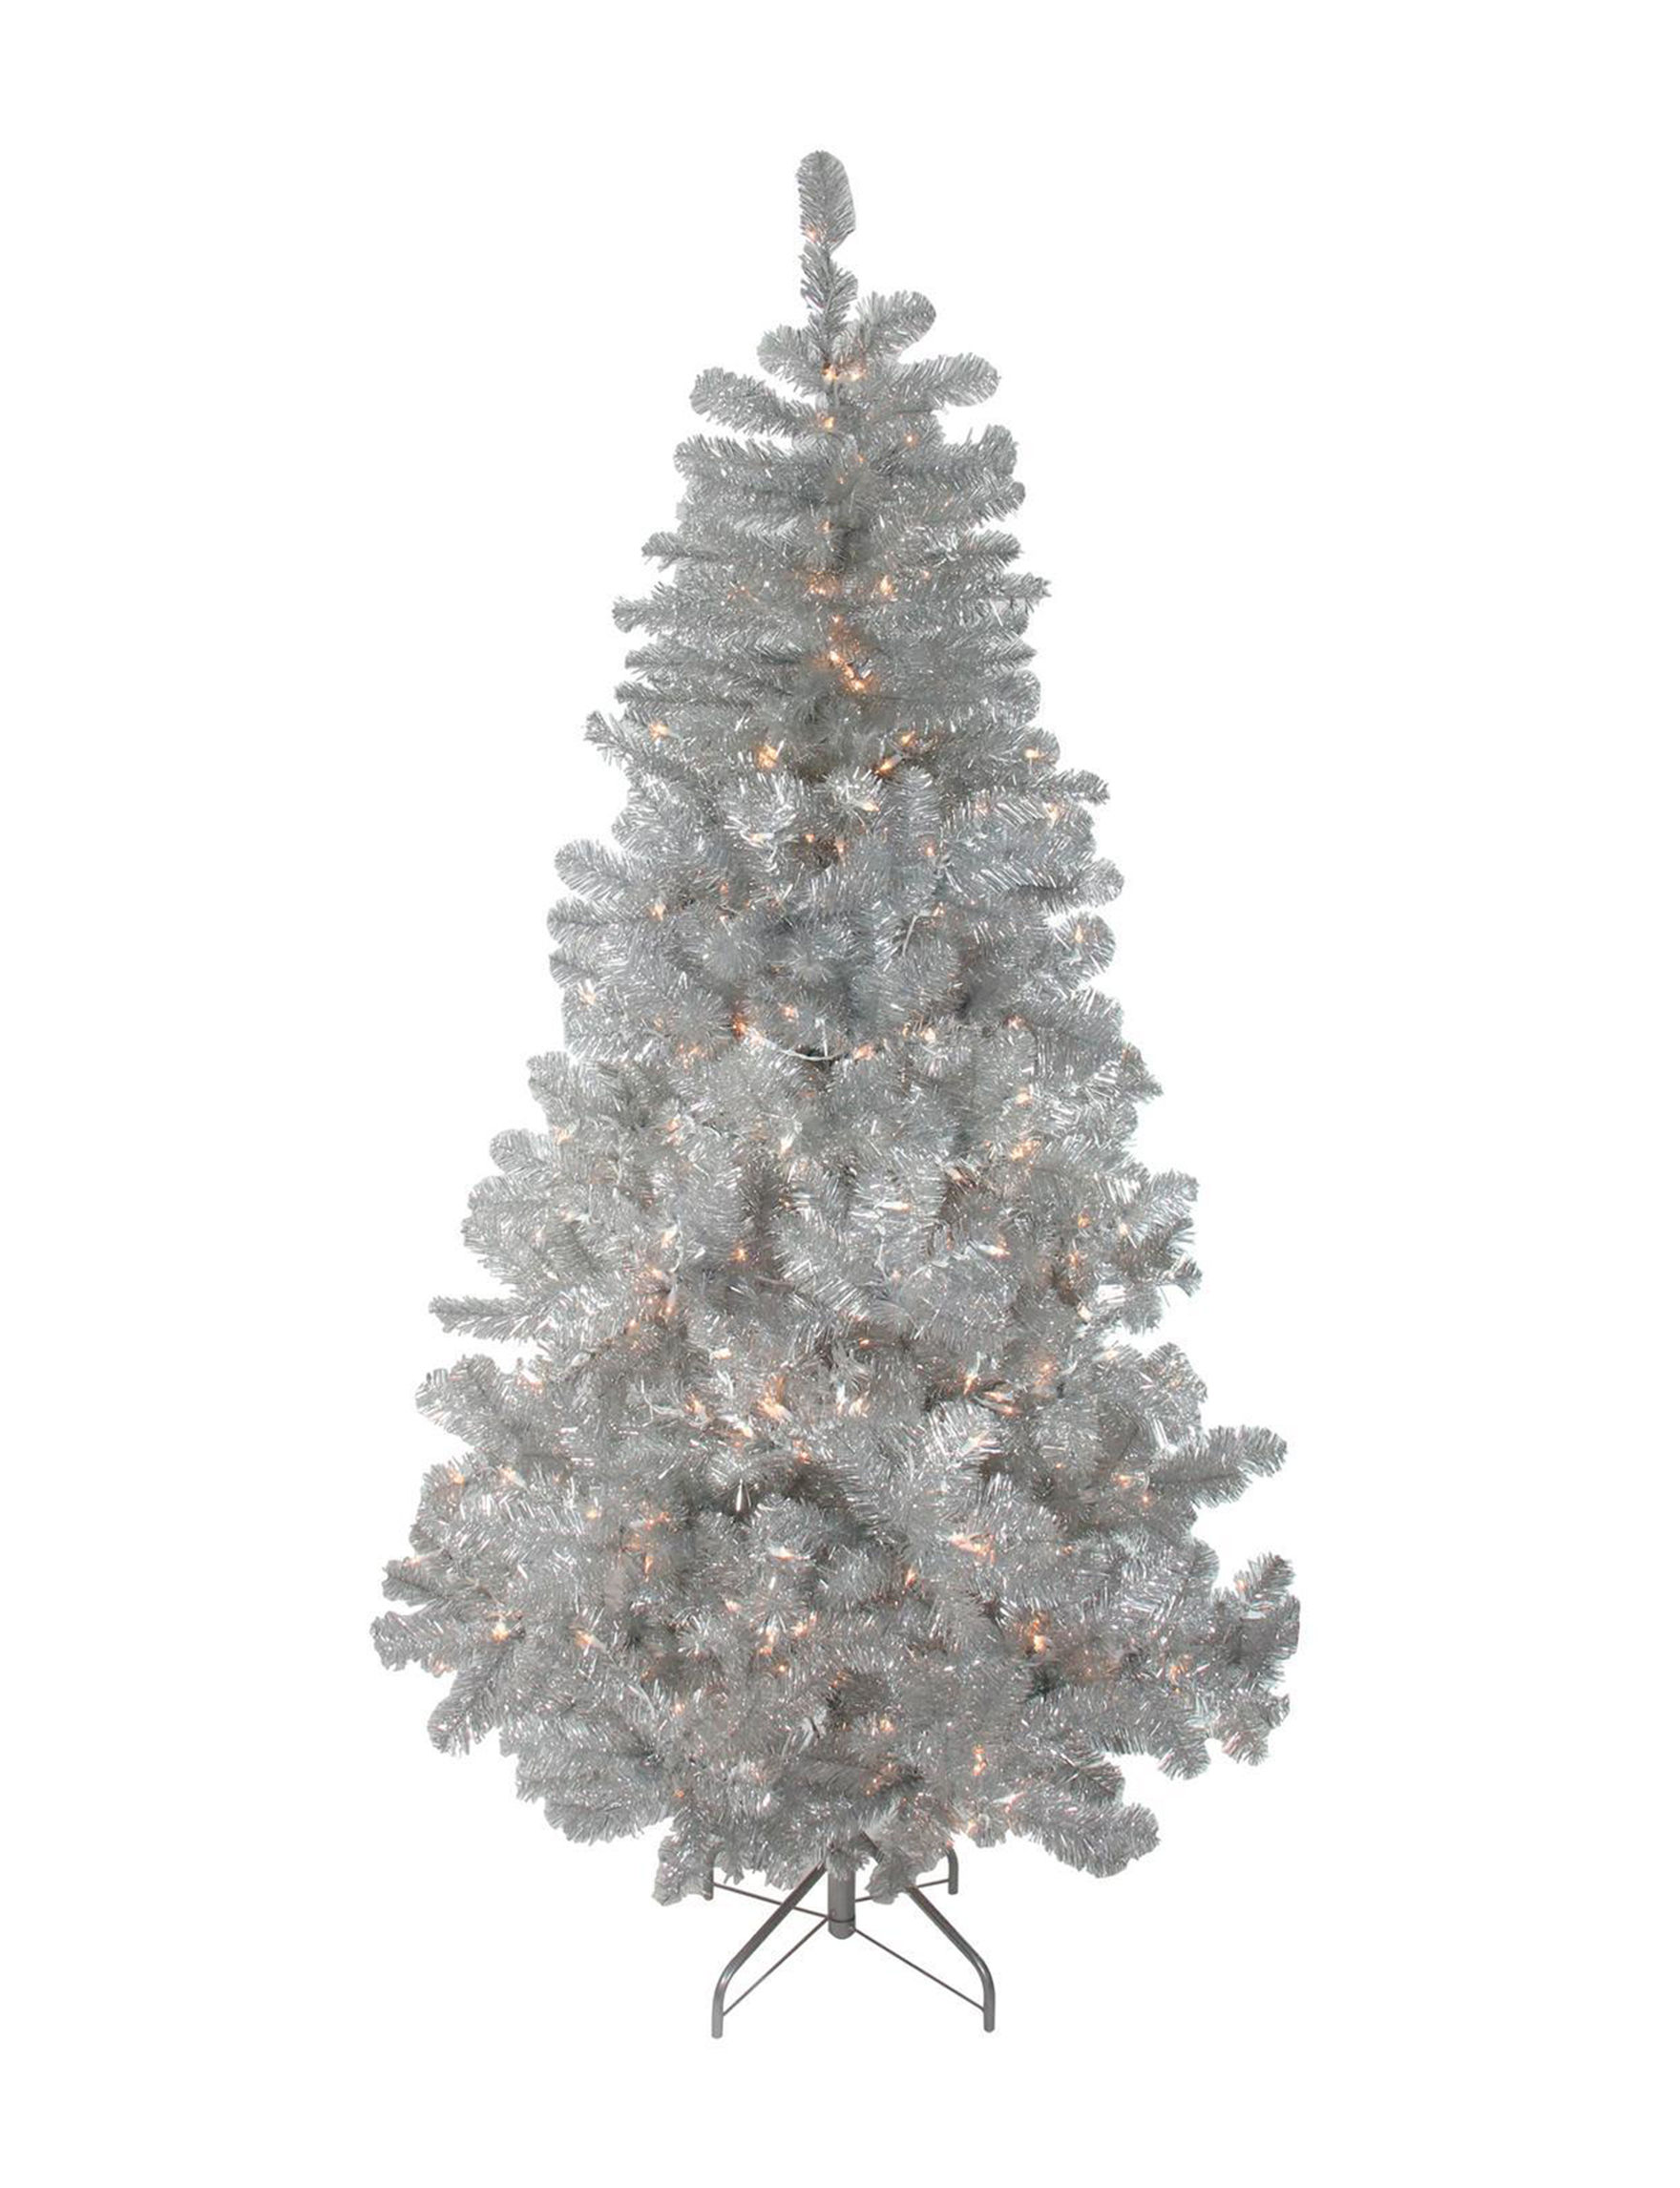 Northlight Silver Christmas Trees Decorative Objects Holiday Decor Home Accents